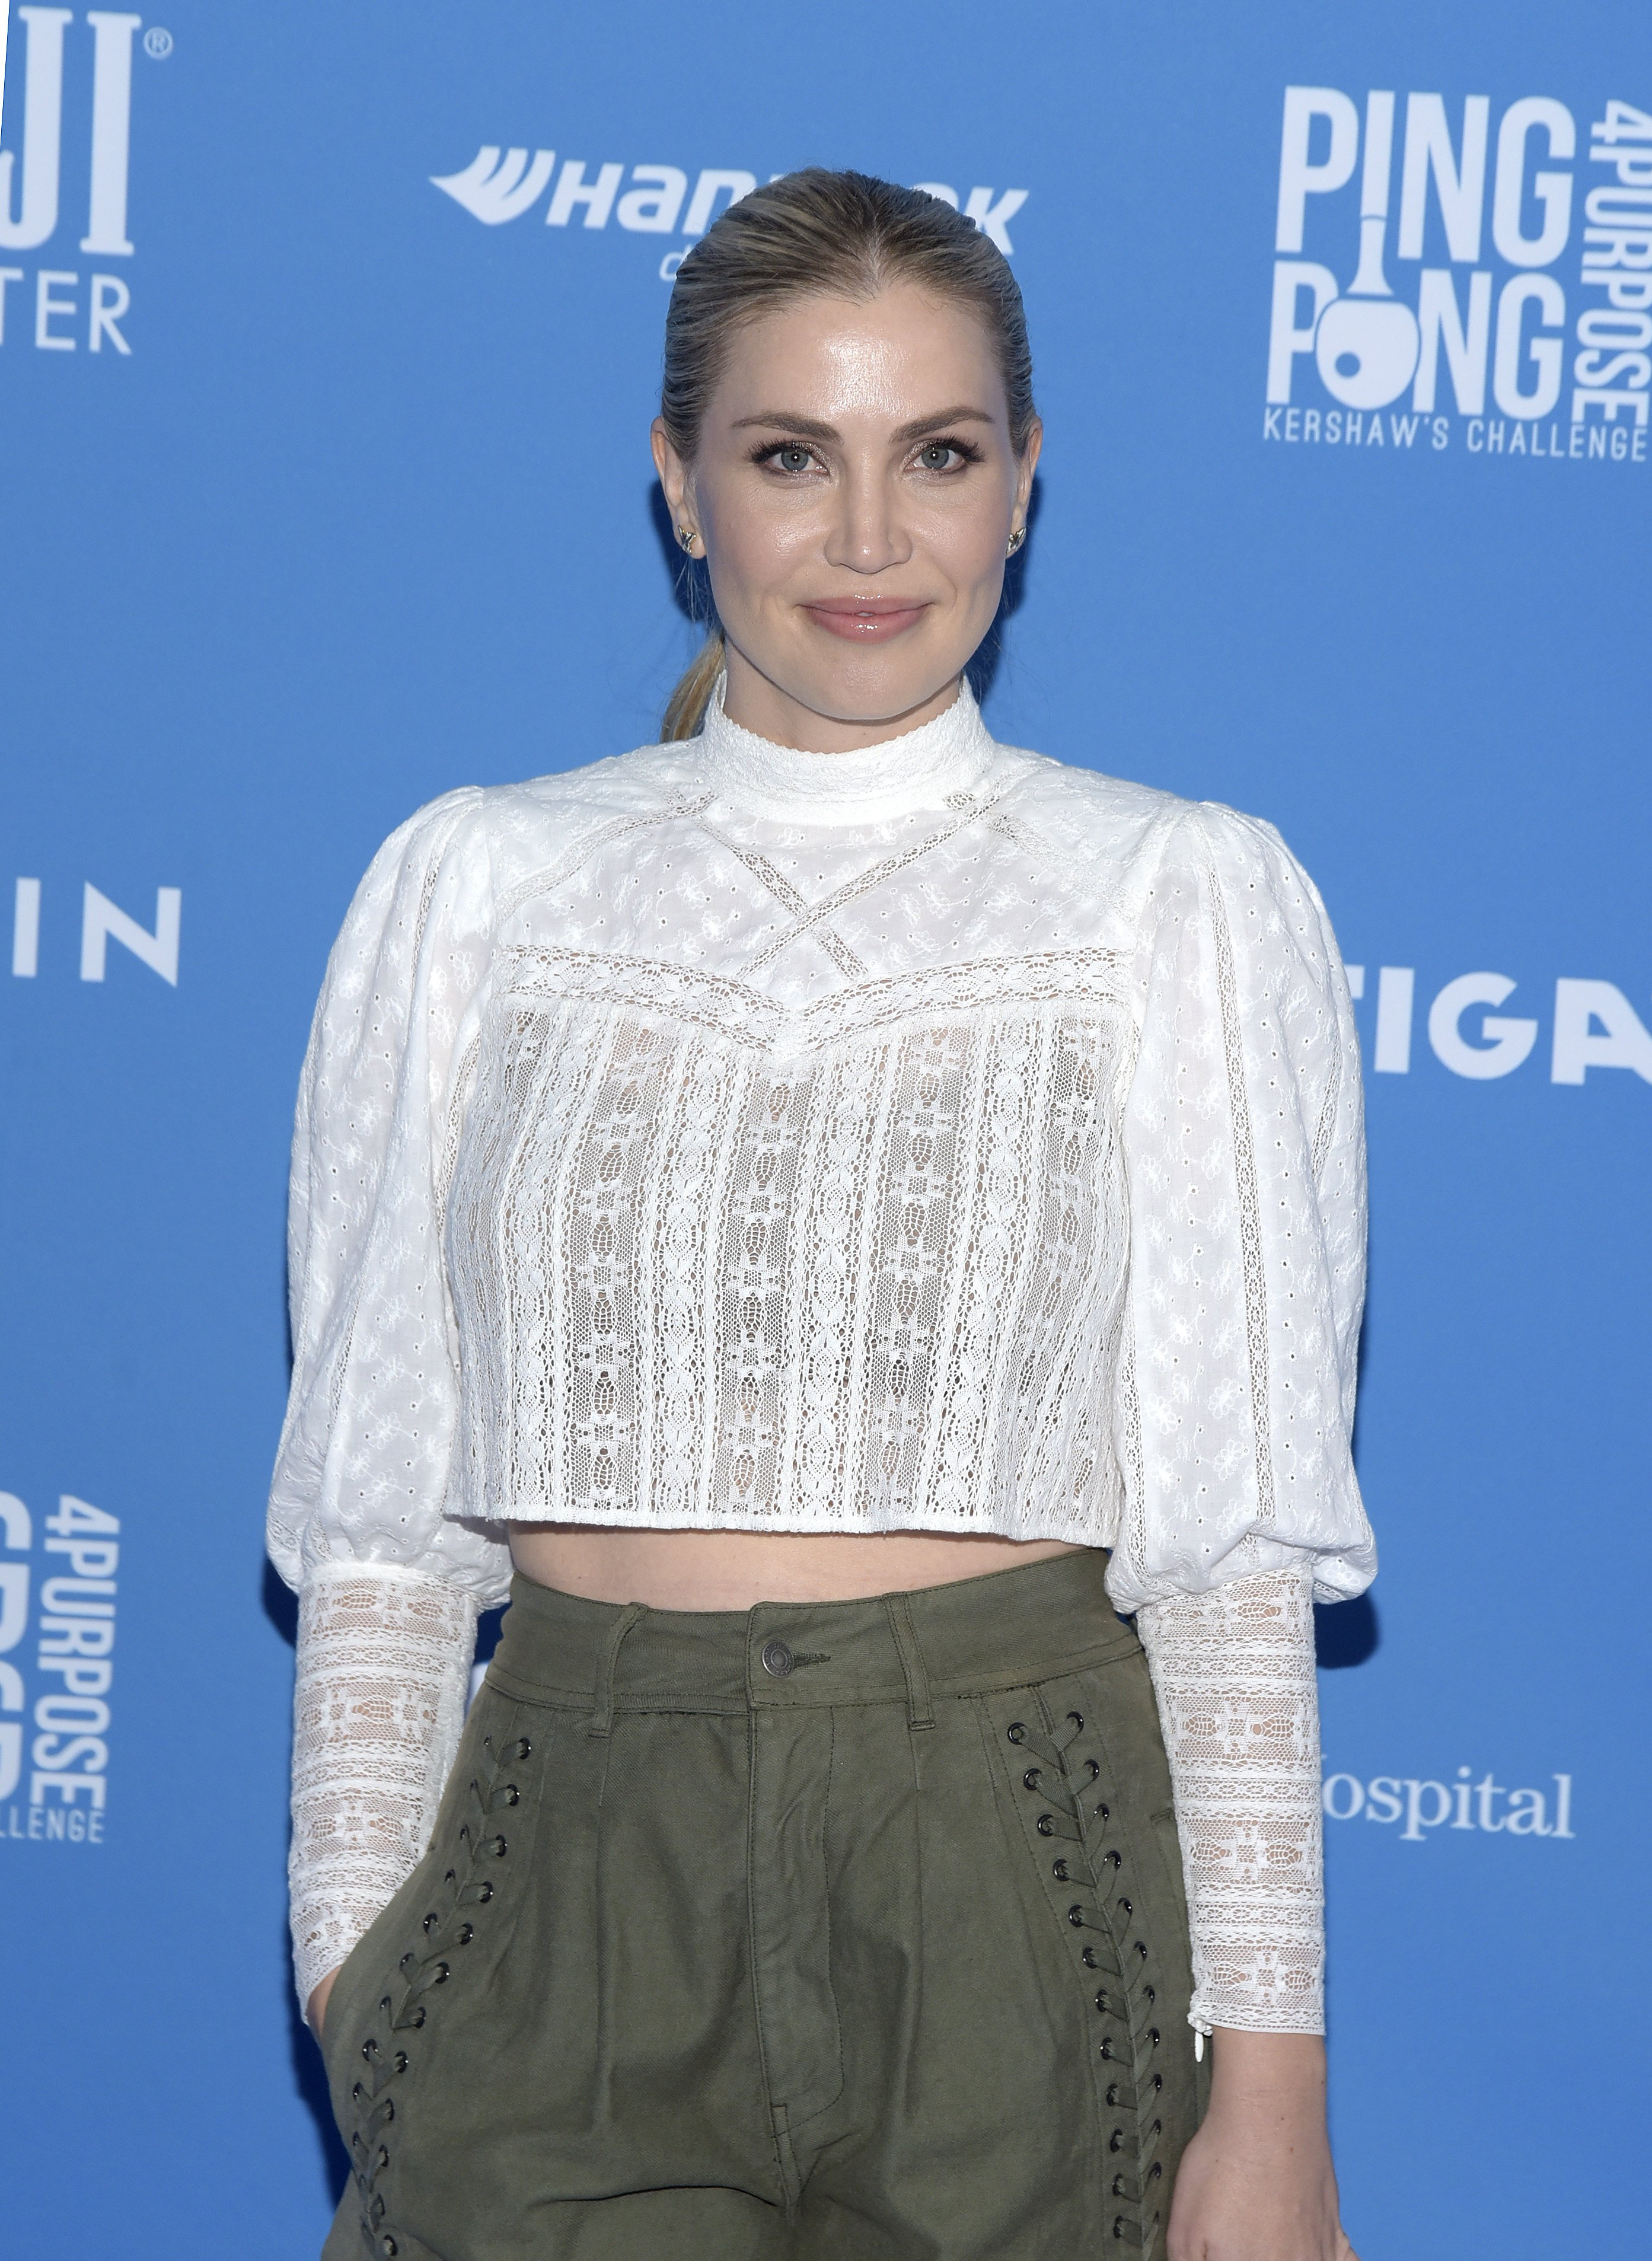 Willa Ford at the 7th annual Ping Pong 4 Purpose celebrity tournament fundraiser on August 08, 2019 | Photo: Getty Images